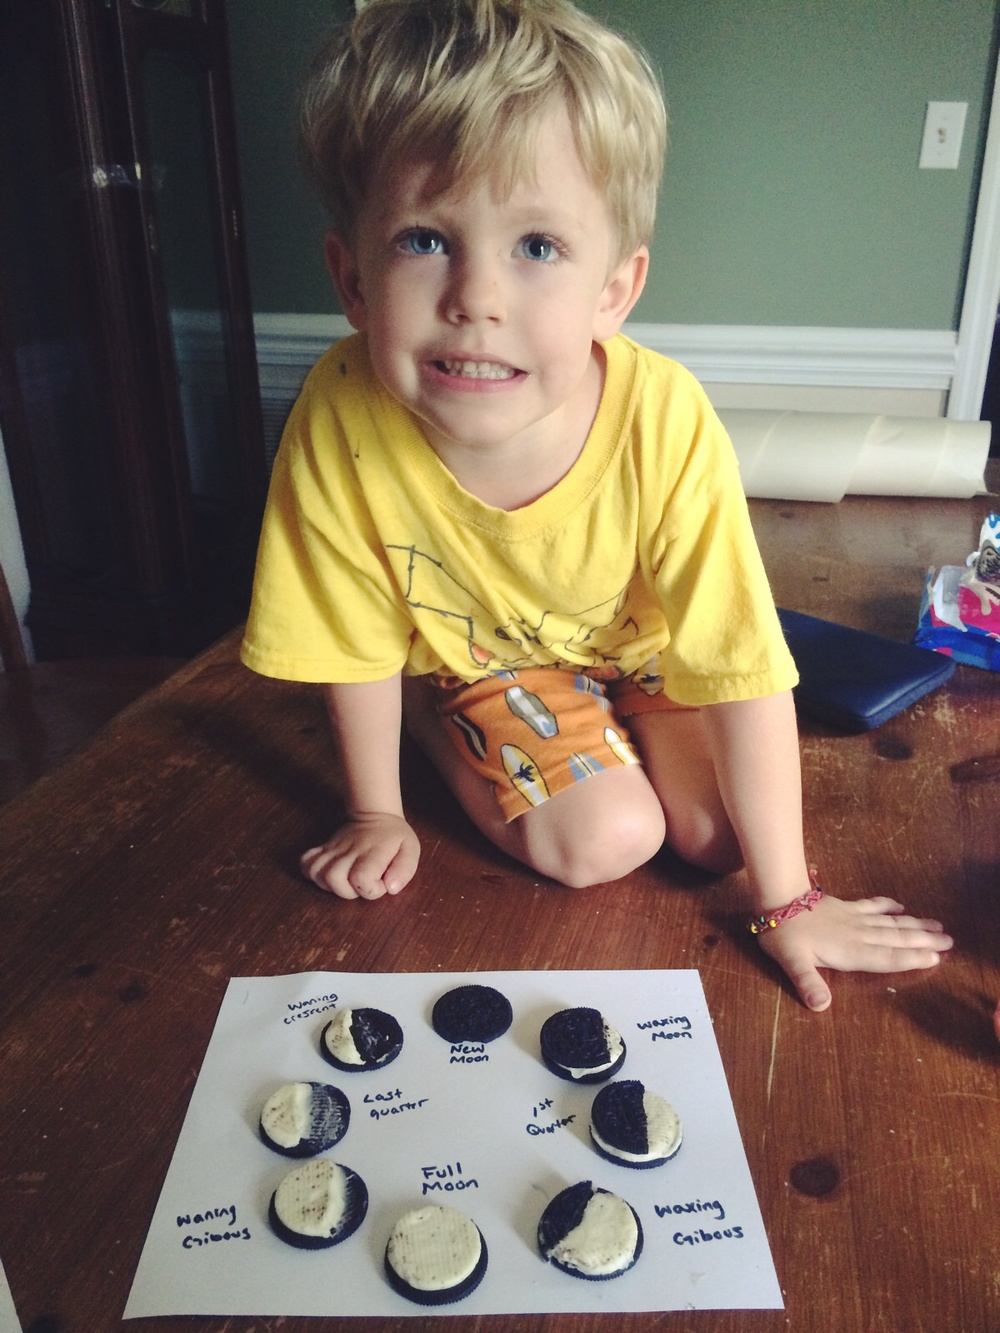 Moon phases with Oreos. This was a HUGE hit for obvious reasons.